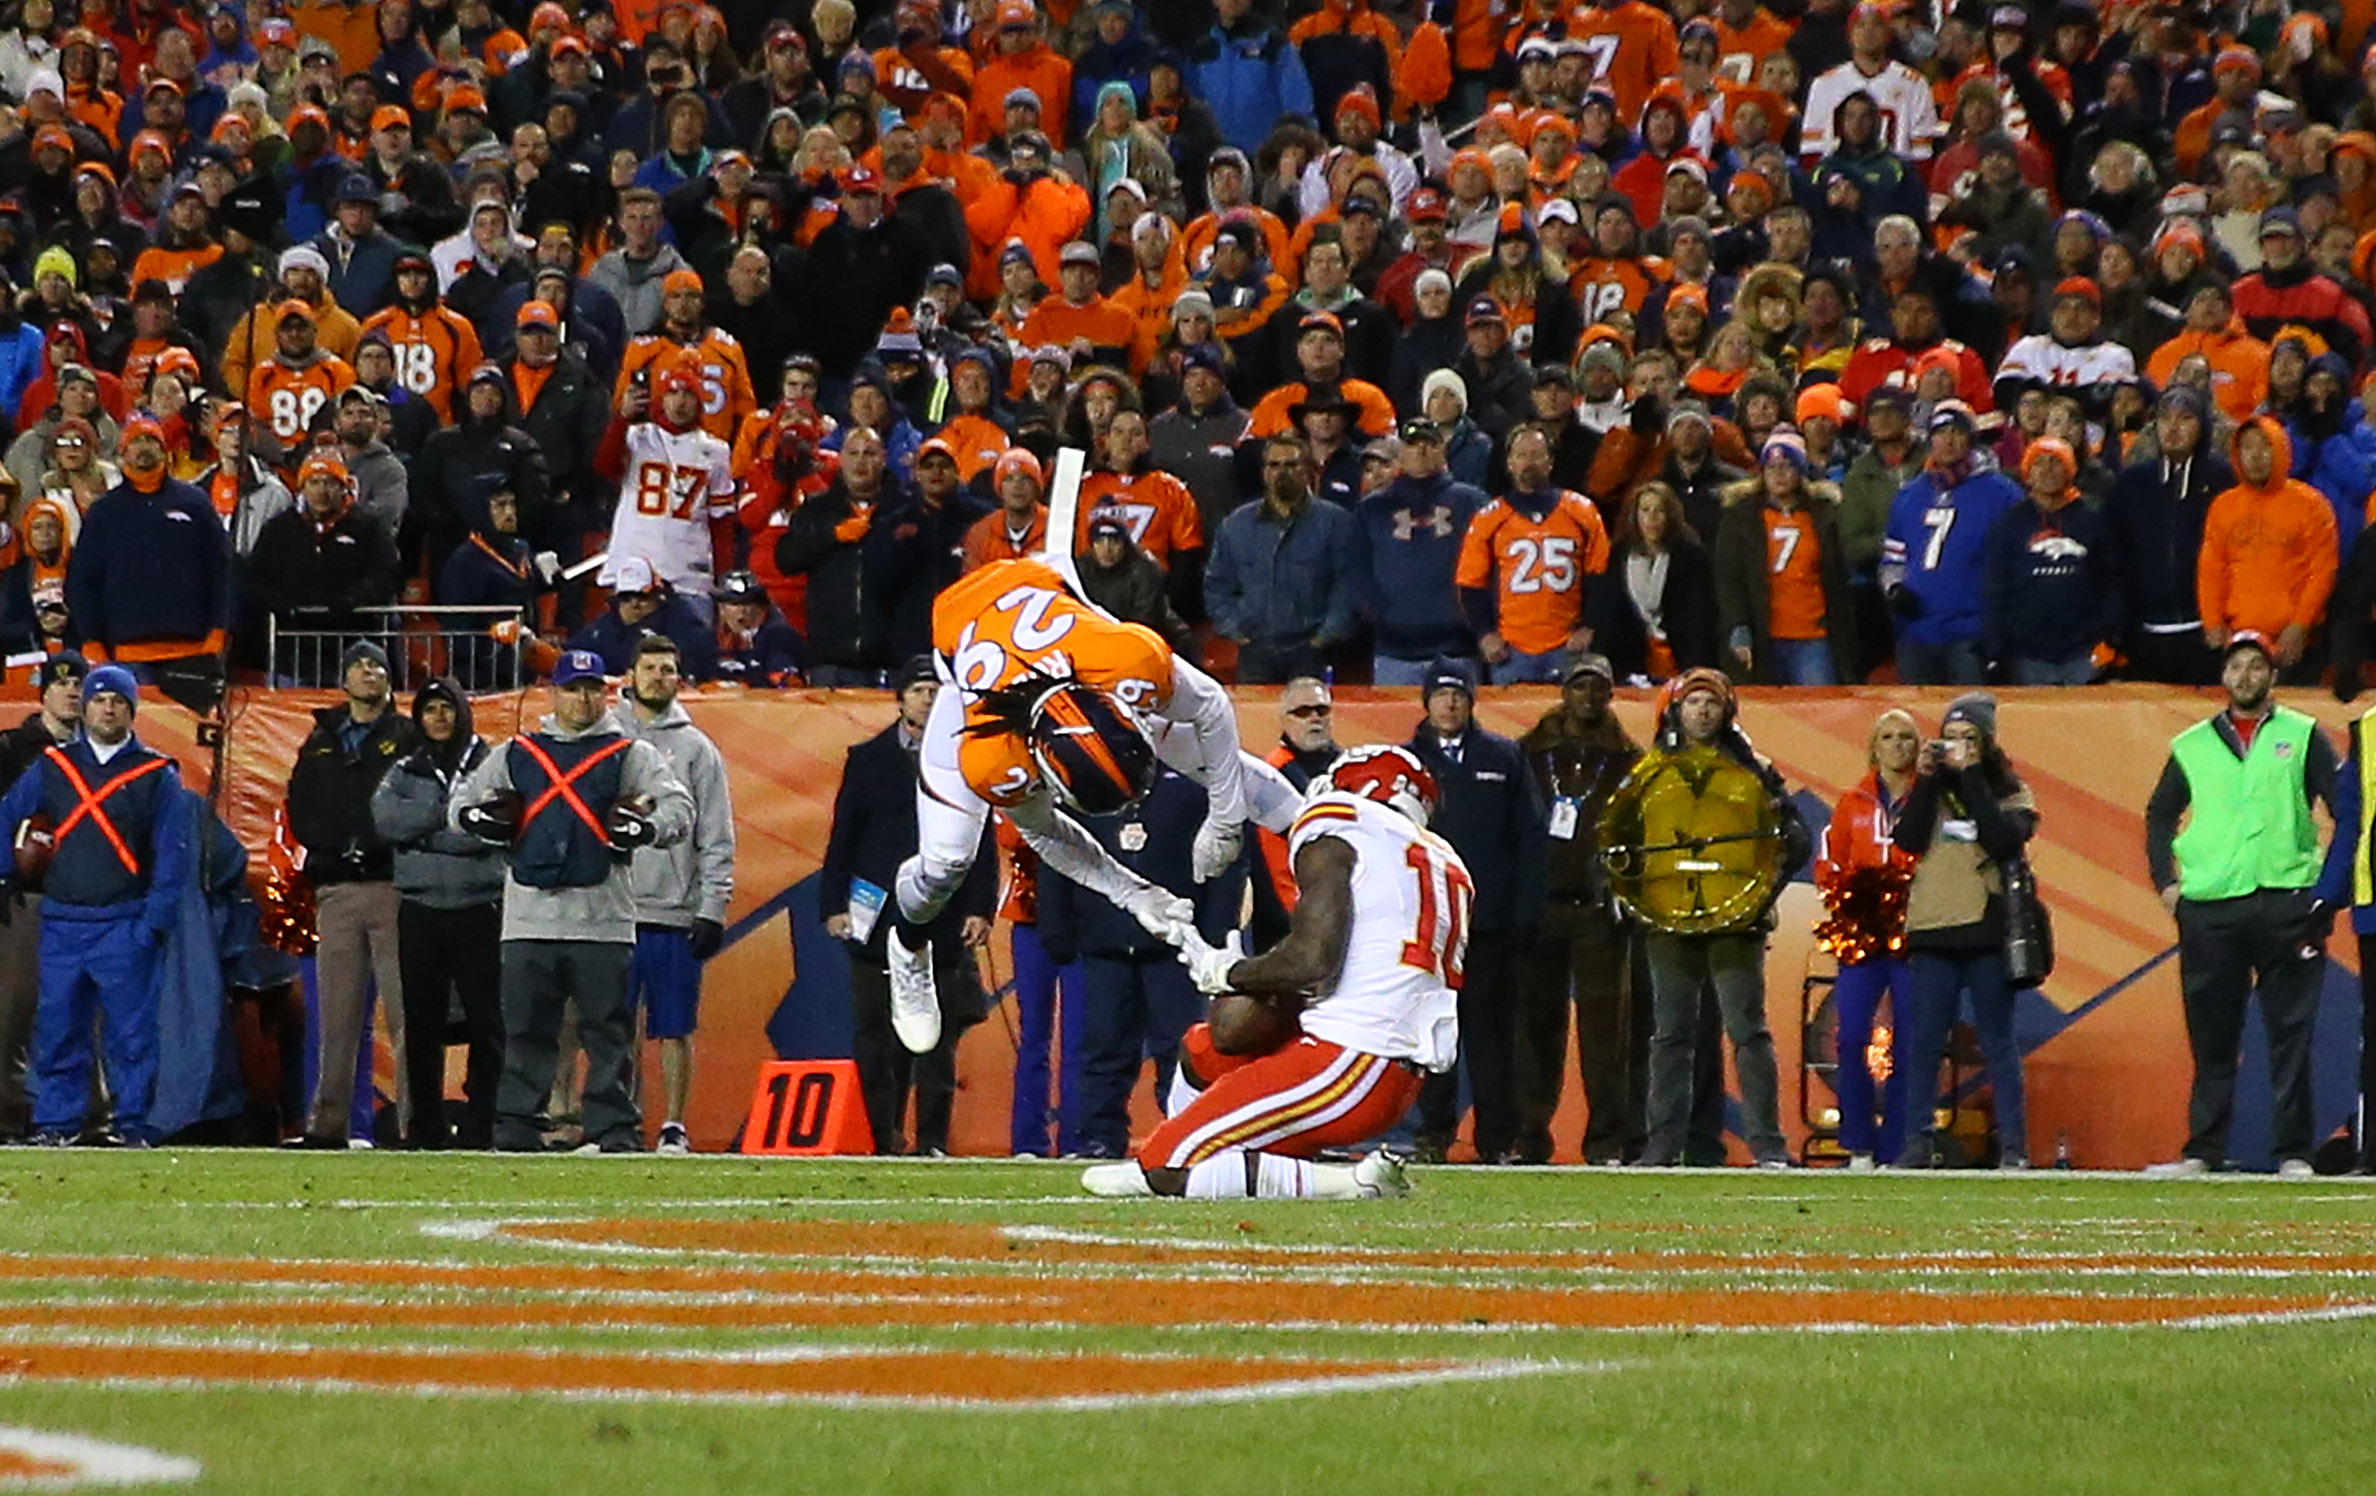 Wide receiver Tyreek Hill #10 of the Kansas City Chiefs scores a touchdown while defended by cornerback Bradley Roby #29 of the Denver Broncos in the fourth quarter at Sports Authority Field at Mile High on November 27, 2016 in Denver, Colorado. (Photo by Justin Edmonds/Getty Images)